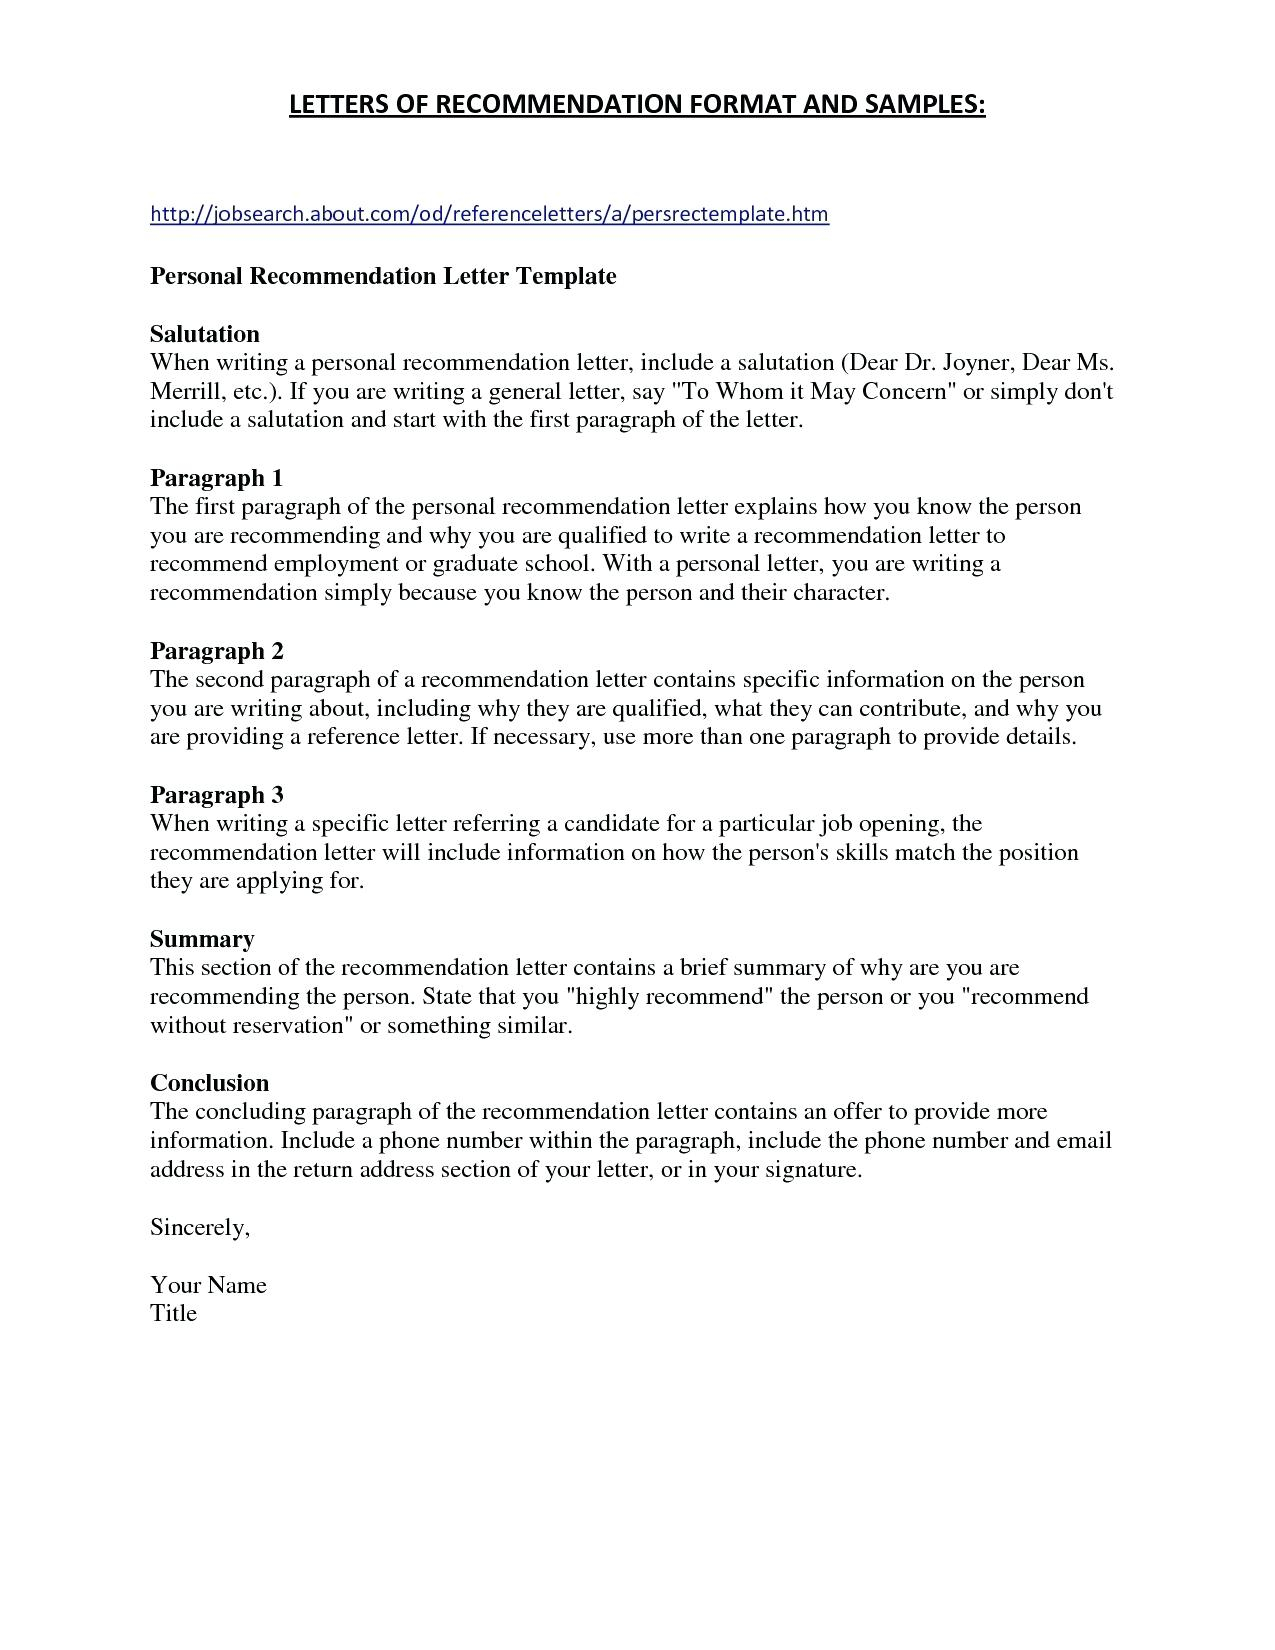 general reference letter template example-Employer Re mendation Letter Template 6 9-k